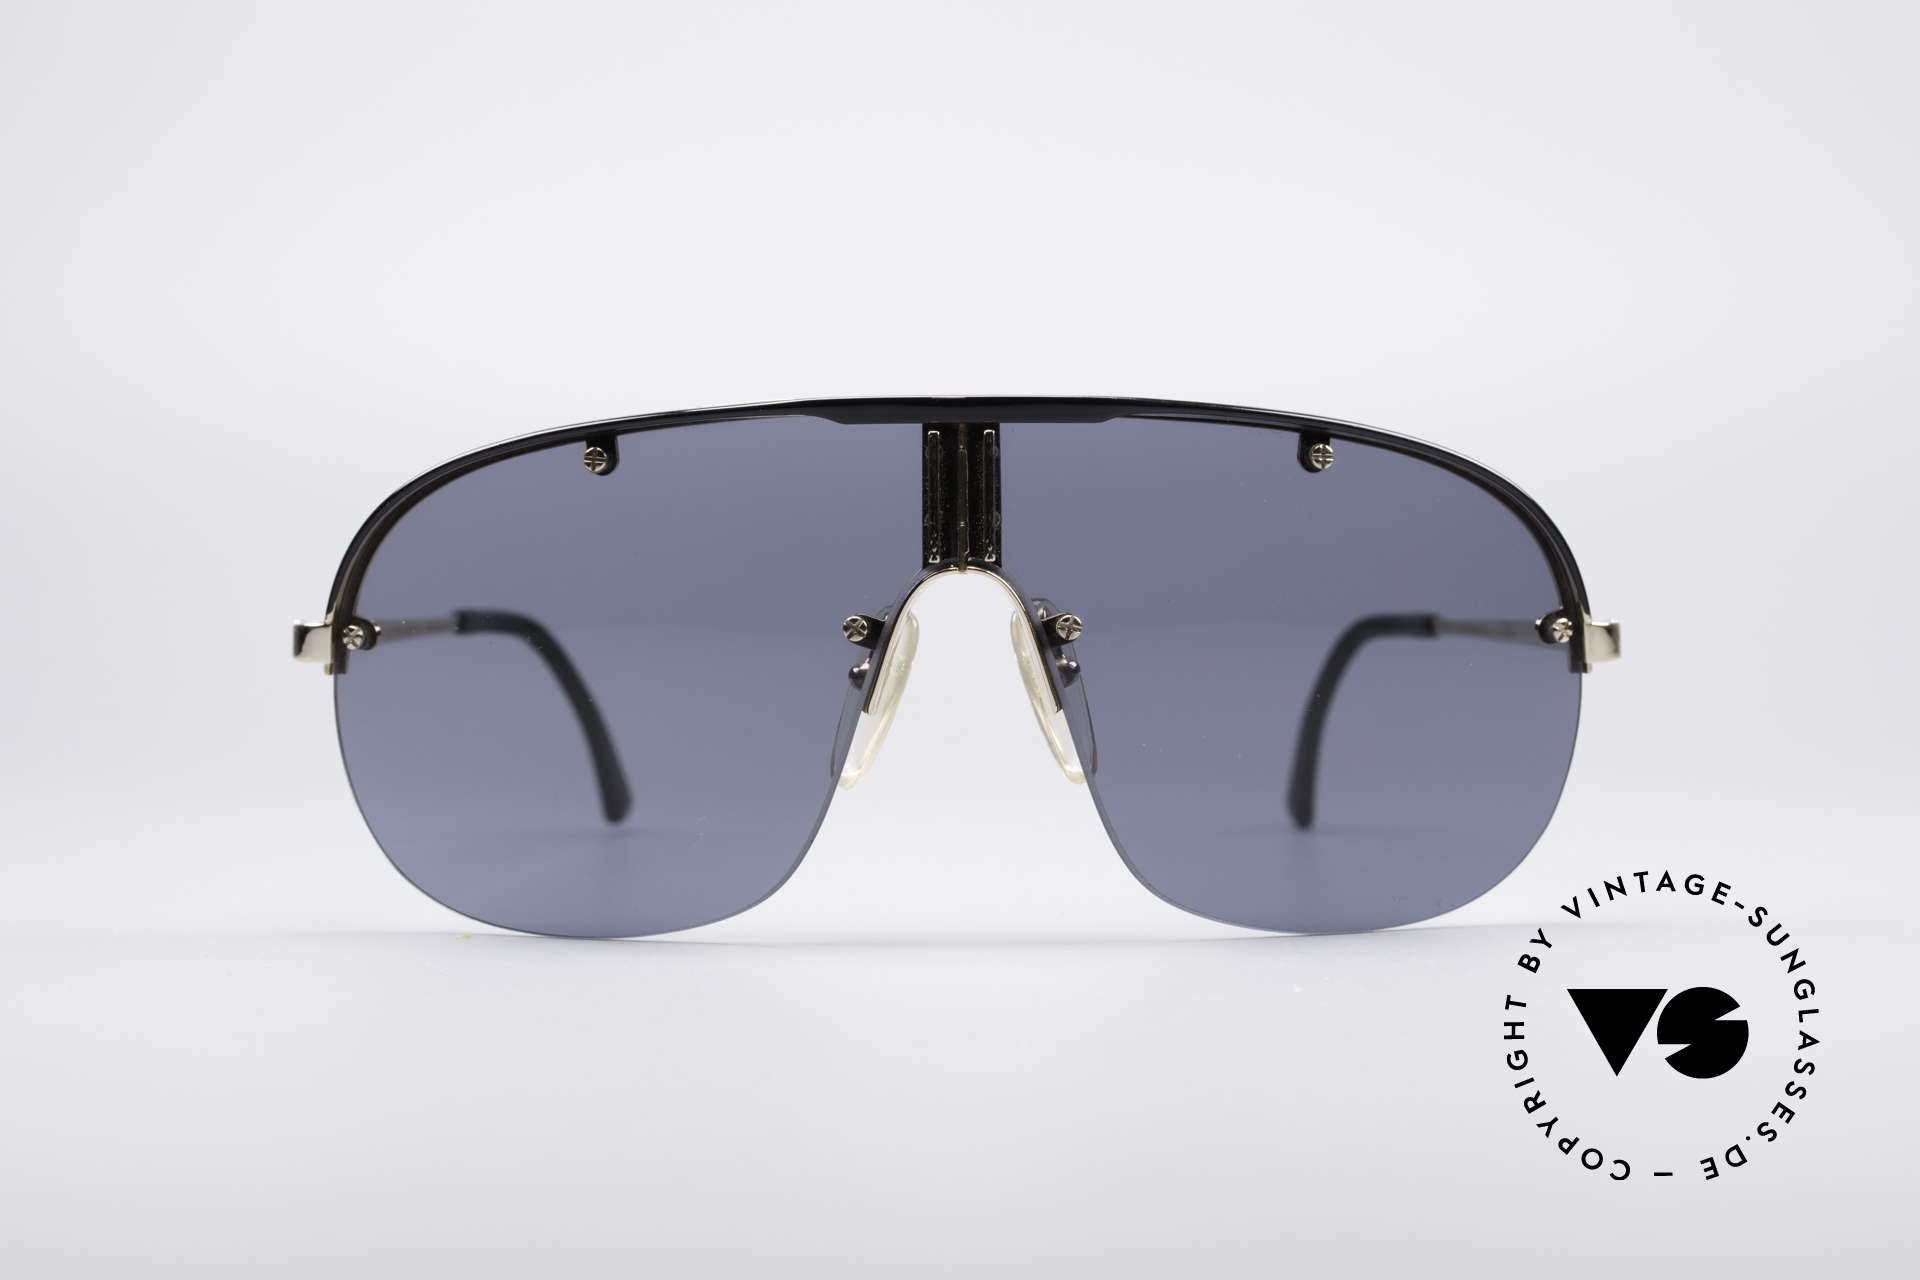 Dunhill 6102 90's Men's Shades, the most wanted DUNHILL vintage model, worldwide, Made for Men